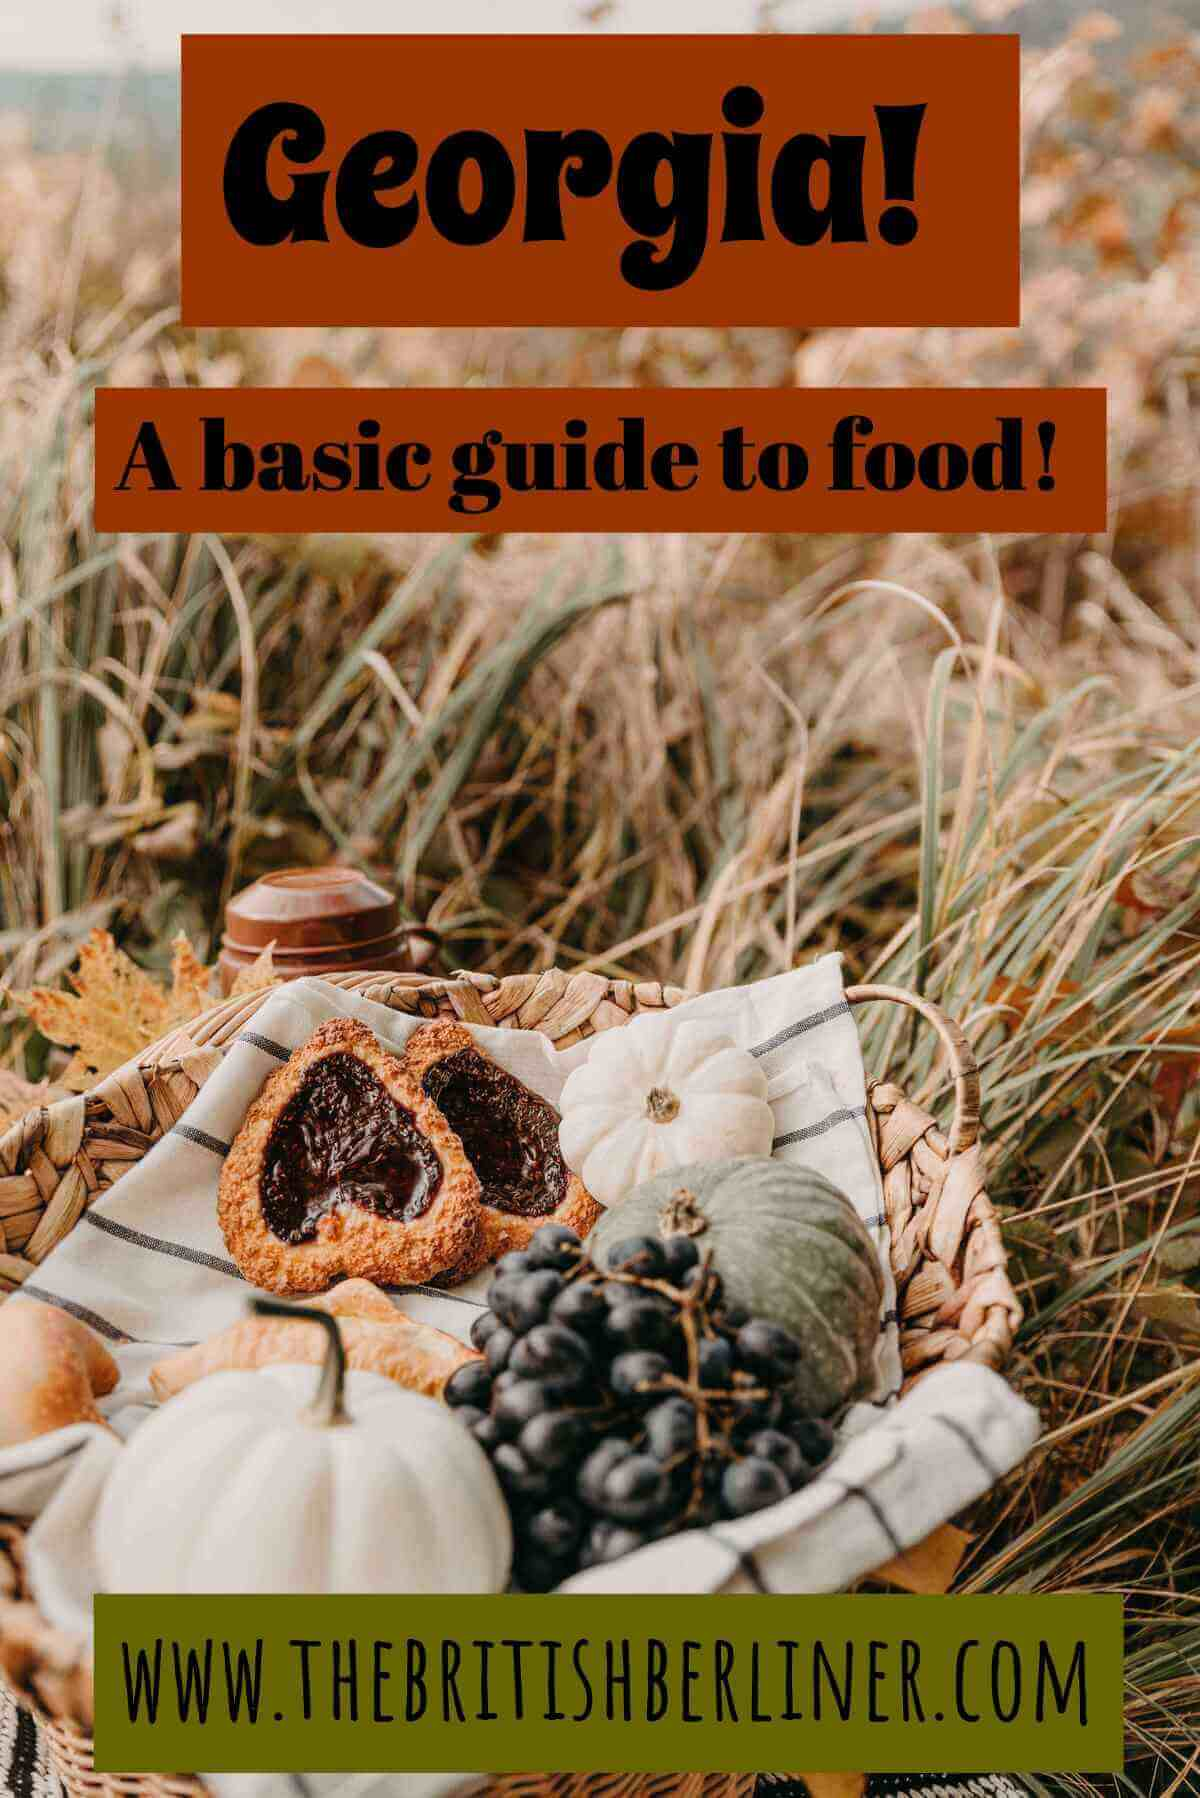 food; fruit; vegetables; fruit and veg; basket; fruit and veg basket; Georgian food; a basic guide to food; basic guide; a basic guide to Georgian food; a basic guide to food in Tbilisi; a basic guide to food in Georgia; food guide; guide Georgia; Georgian; Tbilisi; Tbilisi City Hall; City of Tbilisi; Tbilisi food; best food in Georgia; best food in Tbilisi; best Georgian meal; Georgian meal; Georgian snack; Tbilisian snack; meal; snack; restaurant; Georgian restaurant; Tbilisi restaurant; restaurant in Tbilisi; restaurant in Georgia; Europe; travel;